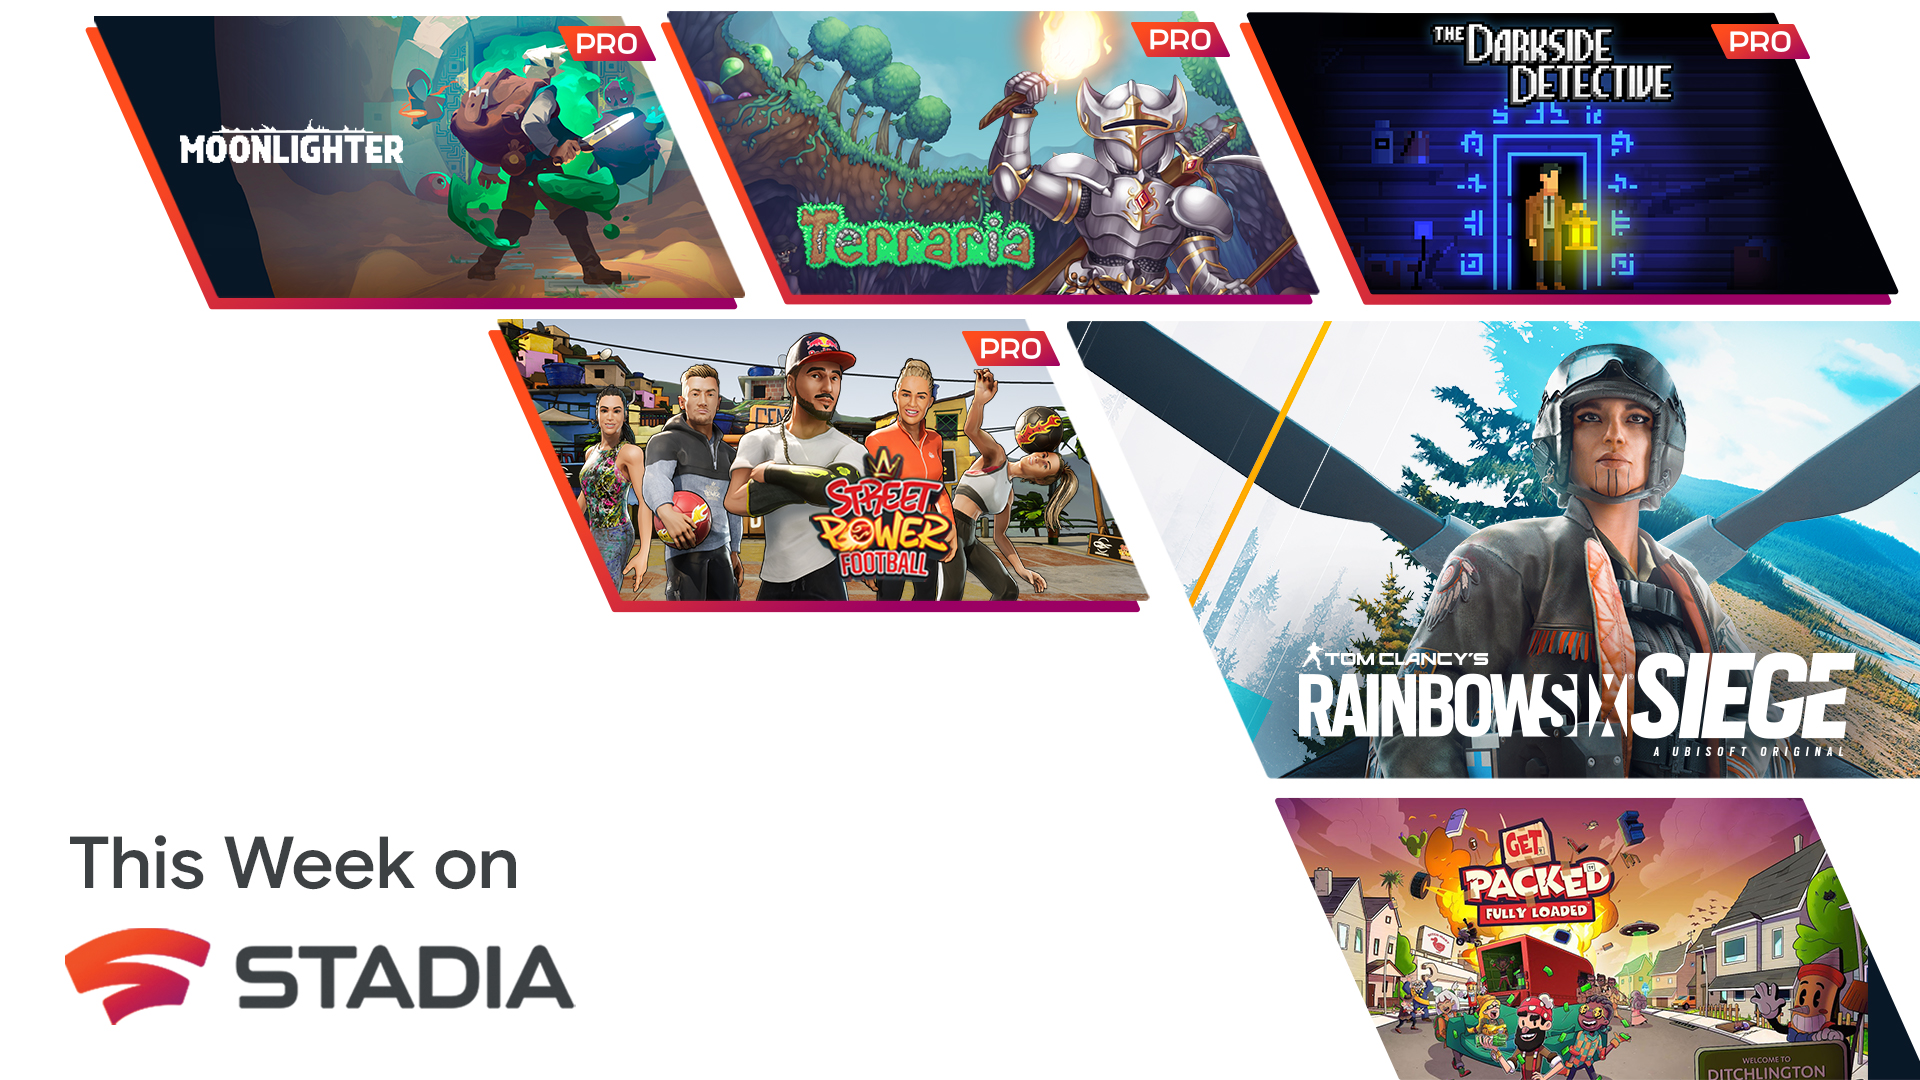 Your Stadia Pro games for July include Moonlighter, Terraria, and more